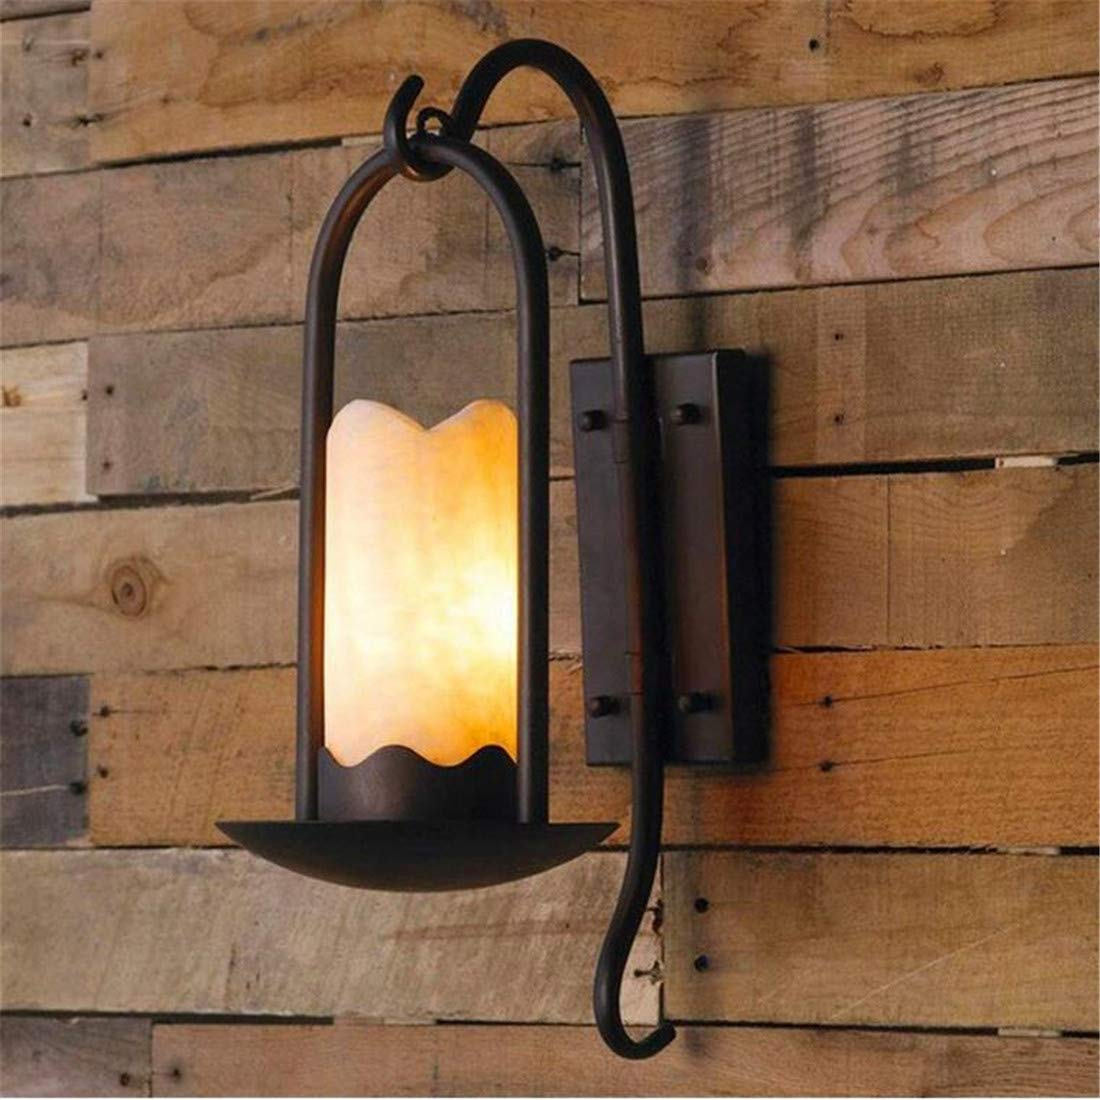 Industrial Antique Wall Lamp Iron 520  280Mm Living Room Bedroom Corridor Staircase Wall Lamp [Energy Class A+++]